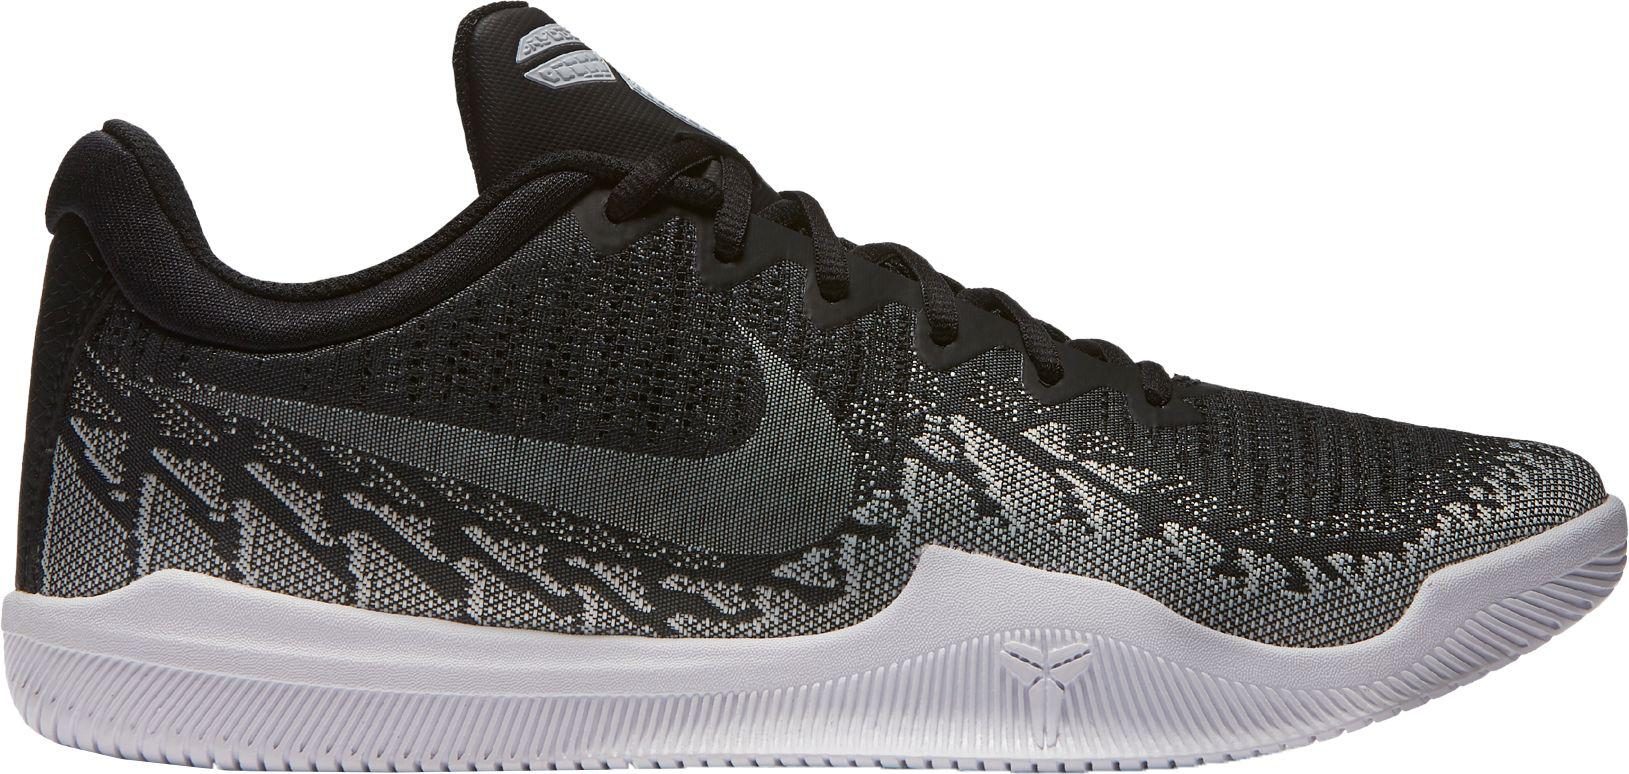 Nike Shoes Anthracite